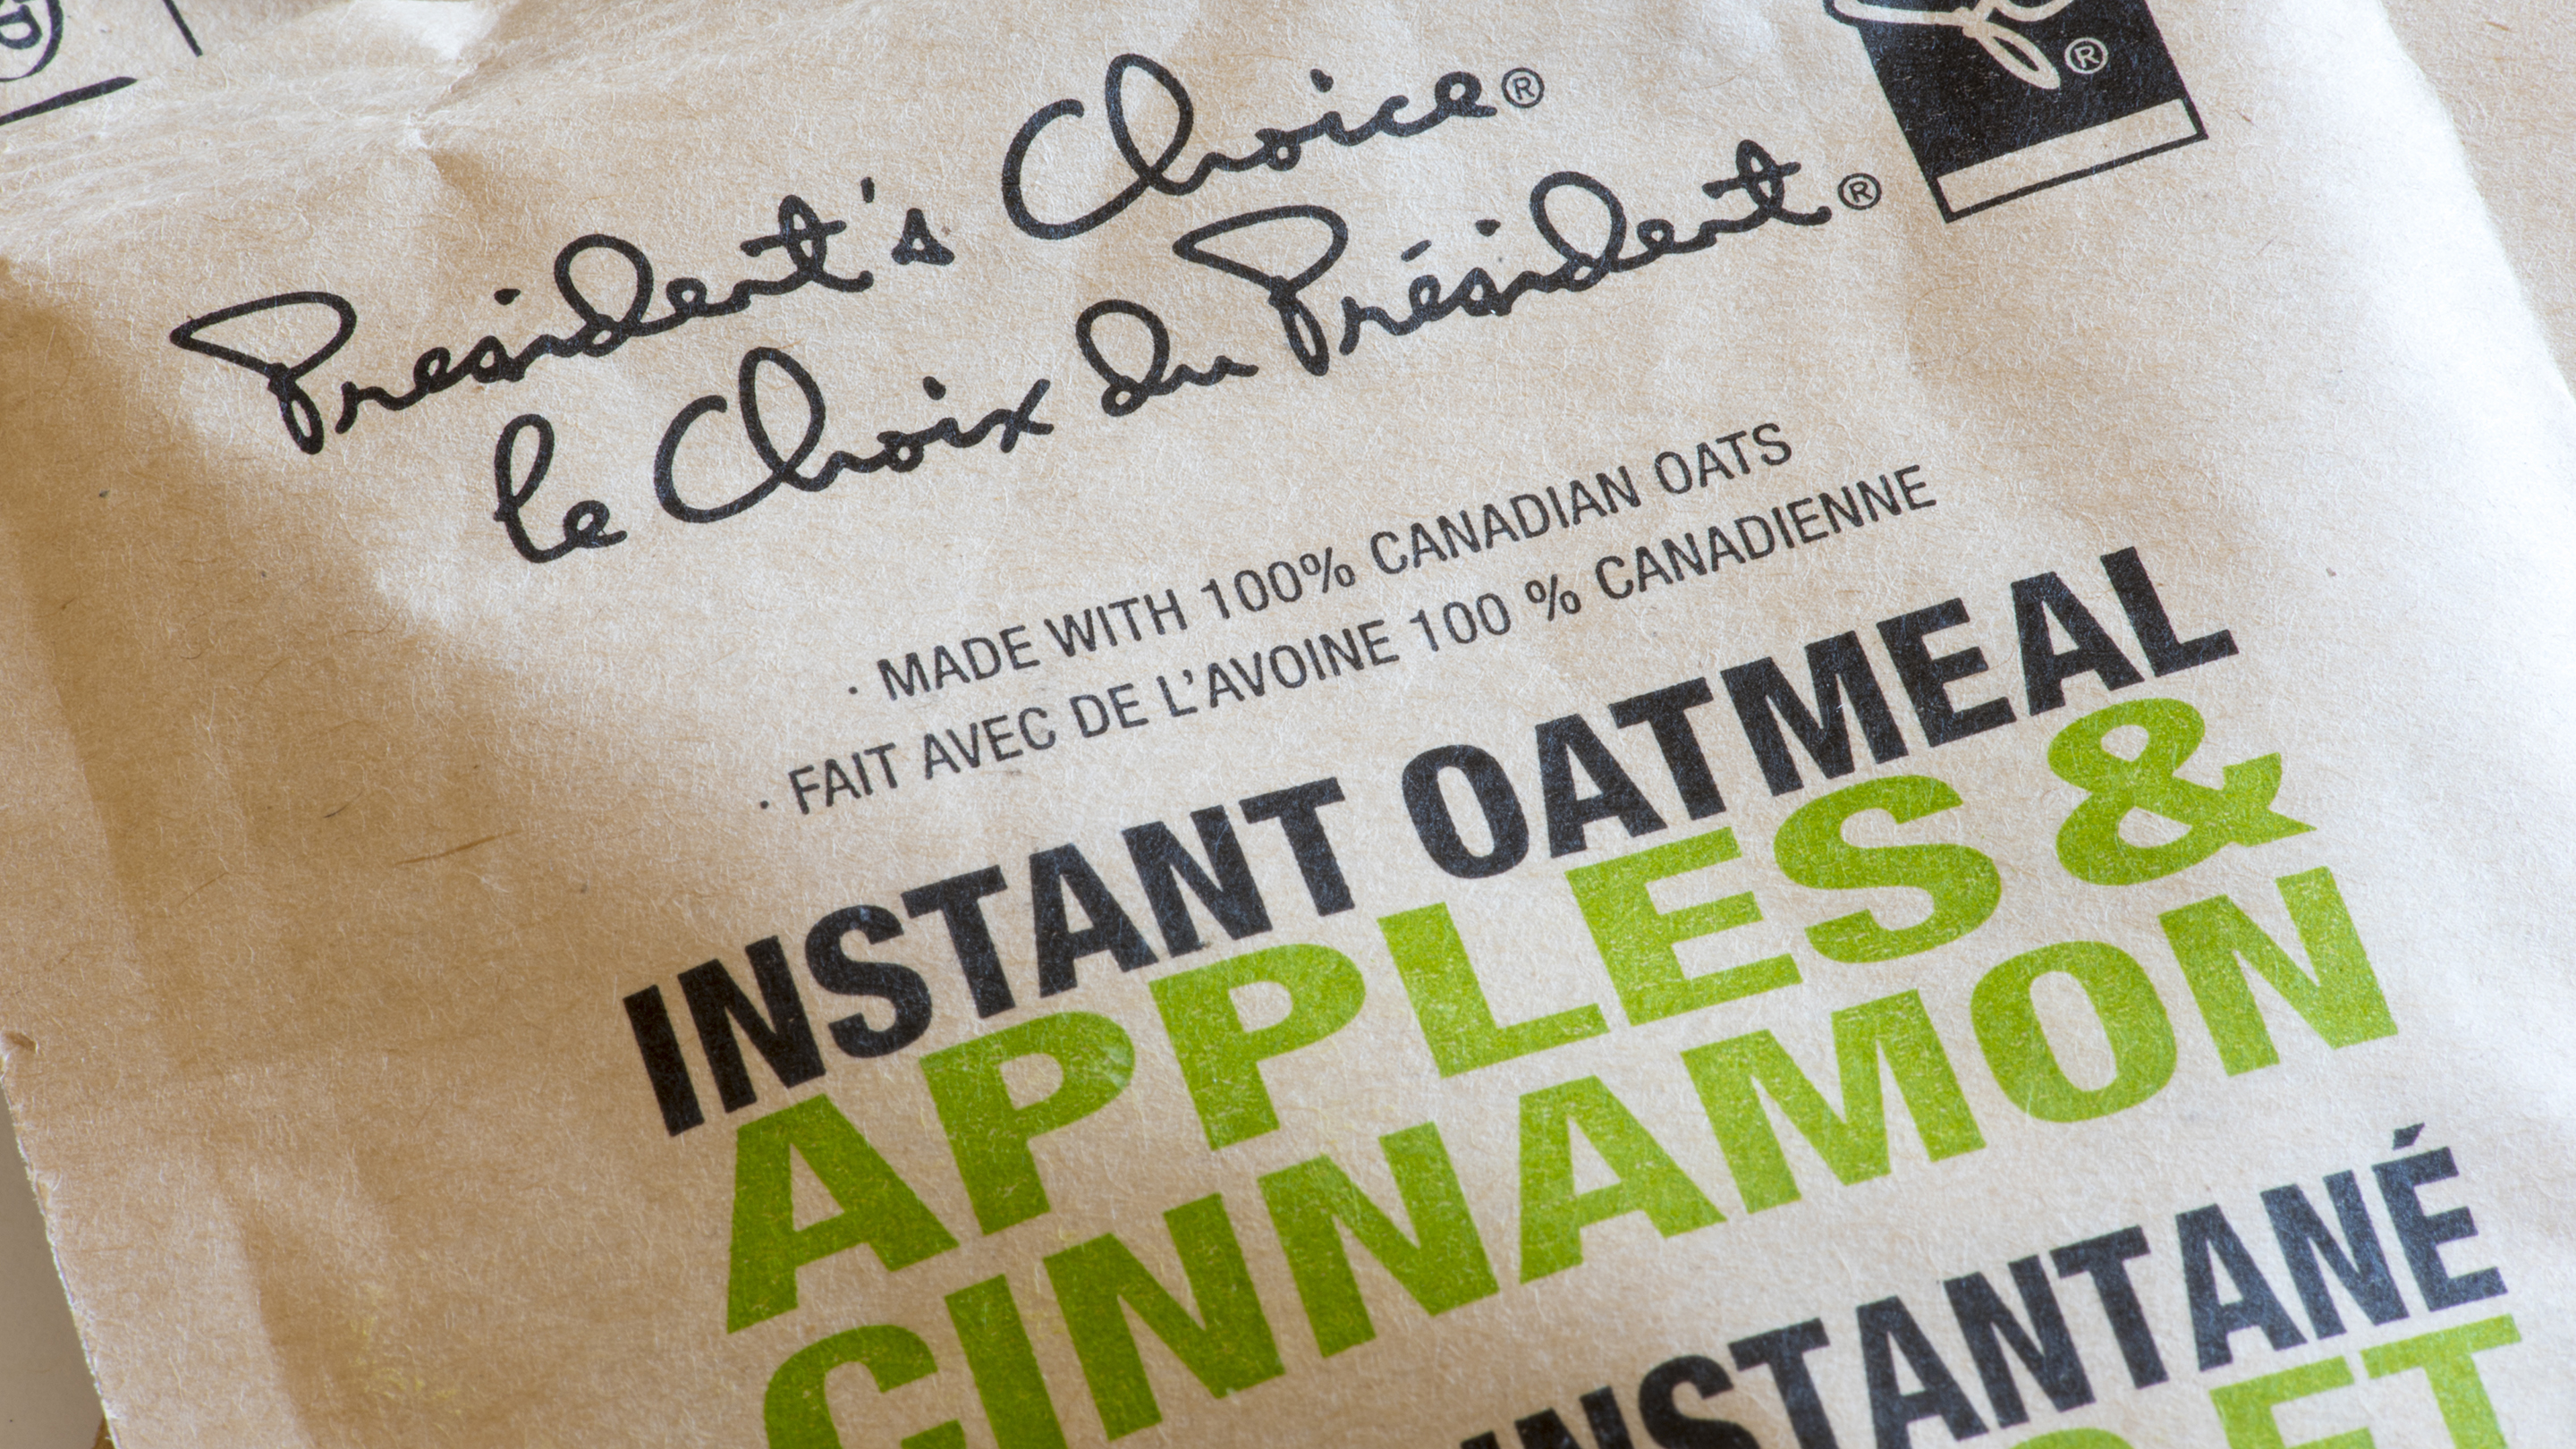 President's Choice instant oatmeal. Flavored apples &